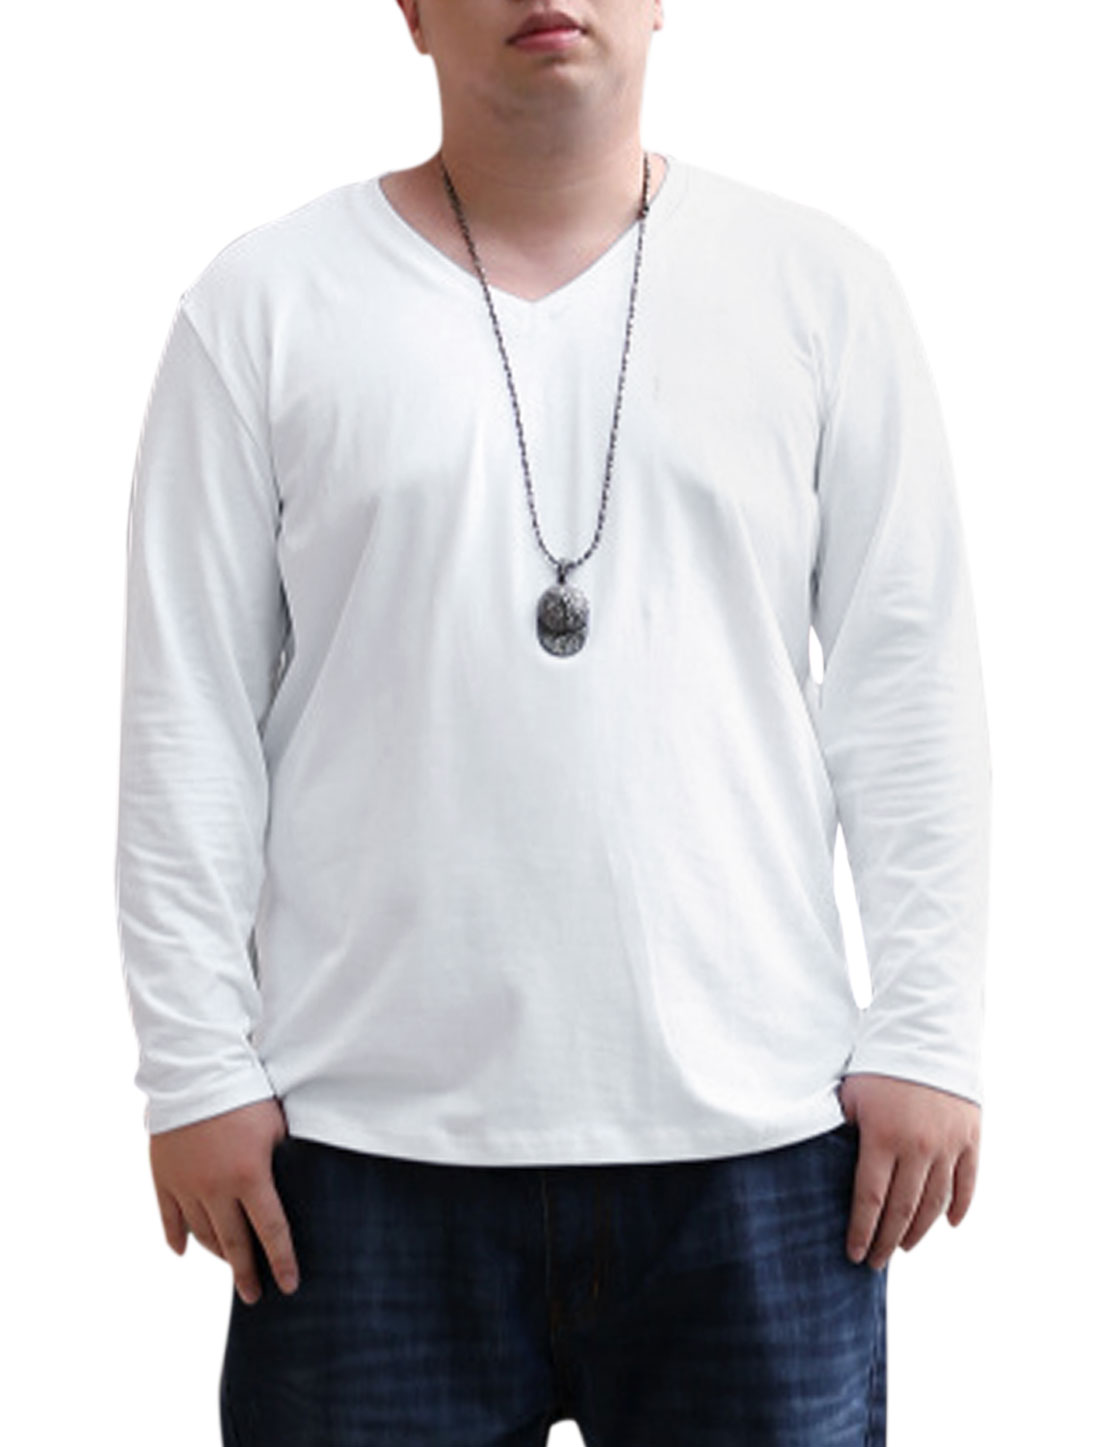 Men Soft Round Neck Long Sleeves Casual Big-Tall T-shirt White 2X Big